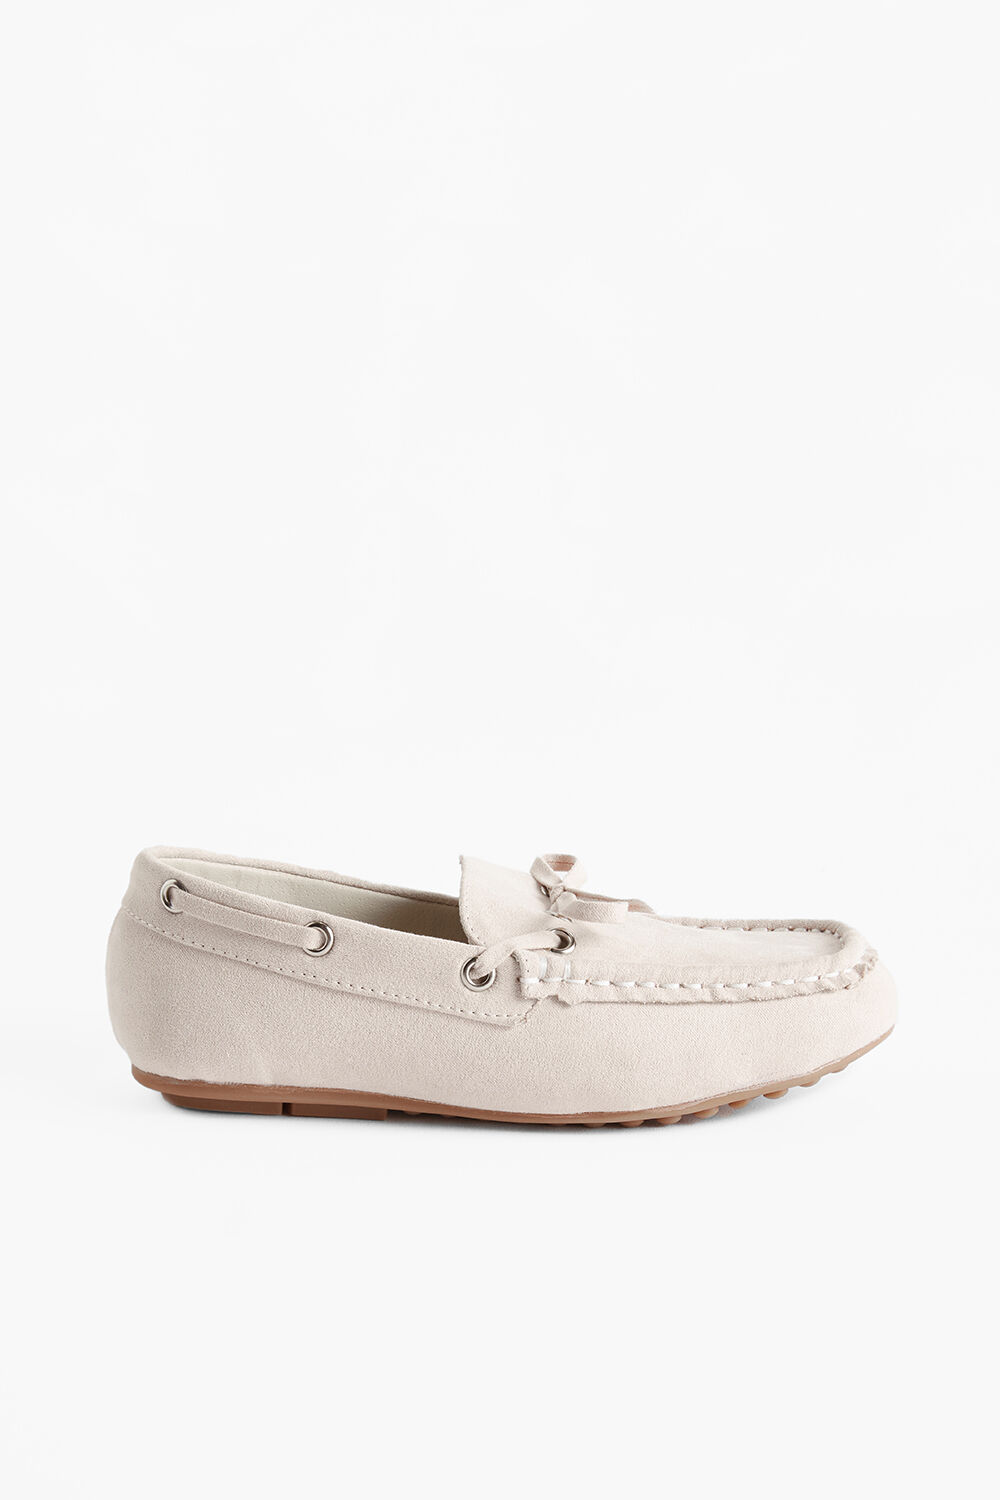 HENRY LOAFER SHOE in colour SAND